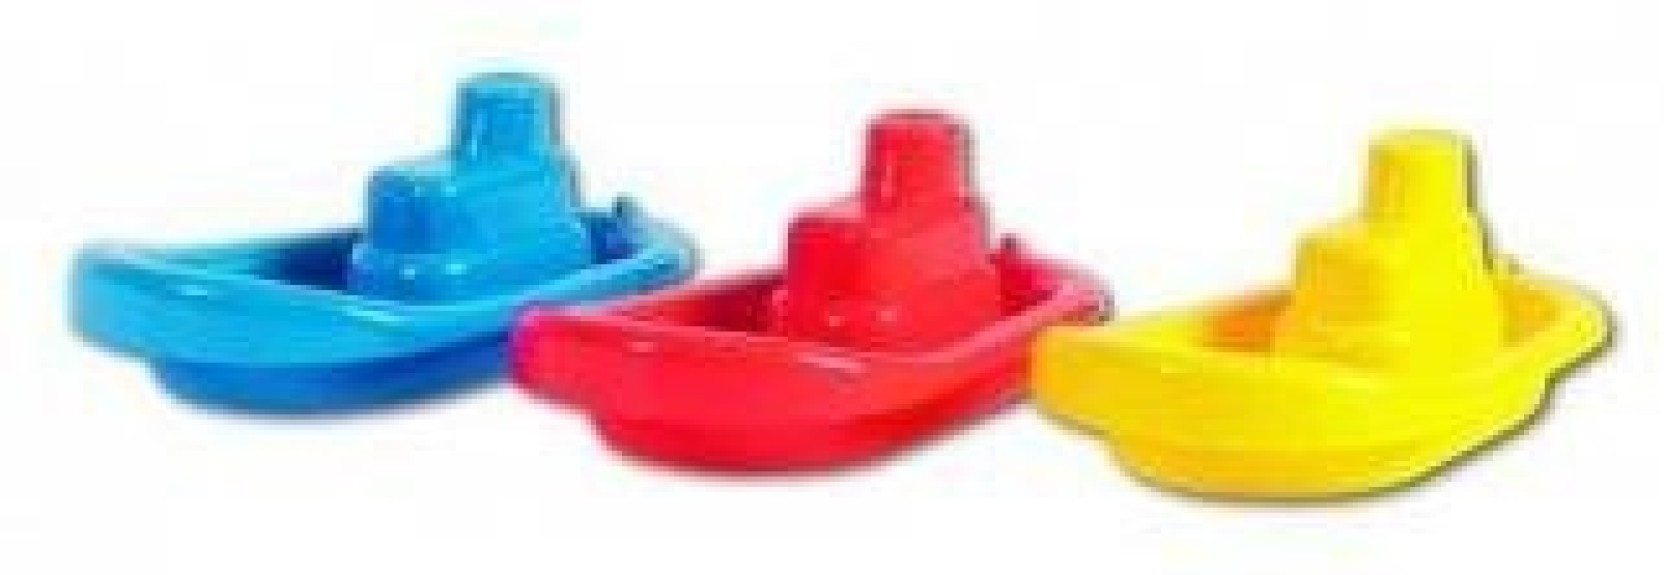 The Original Toy Company Bathtub Toys: Collection of 3 Stacking ...